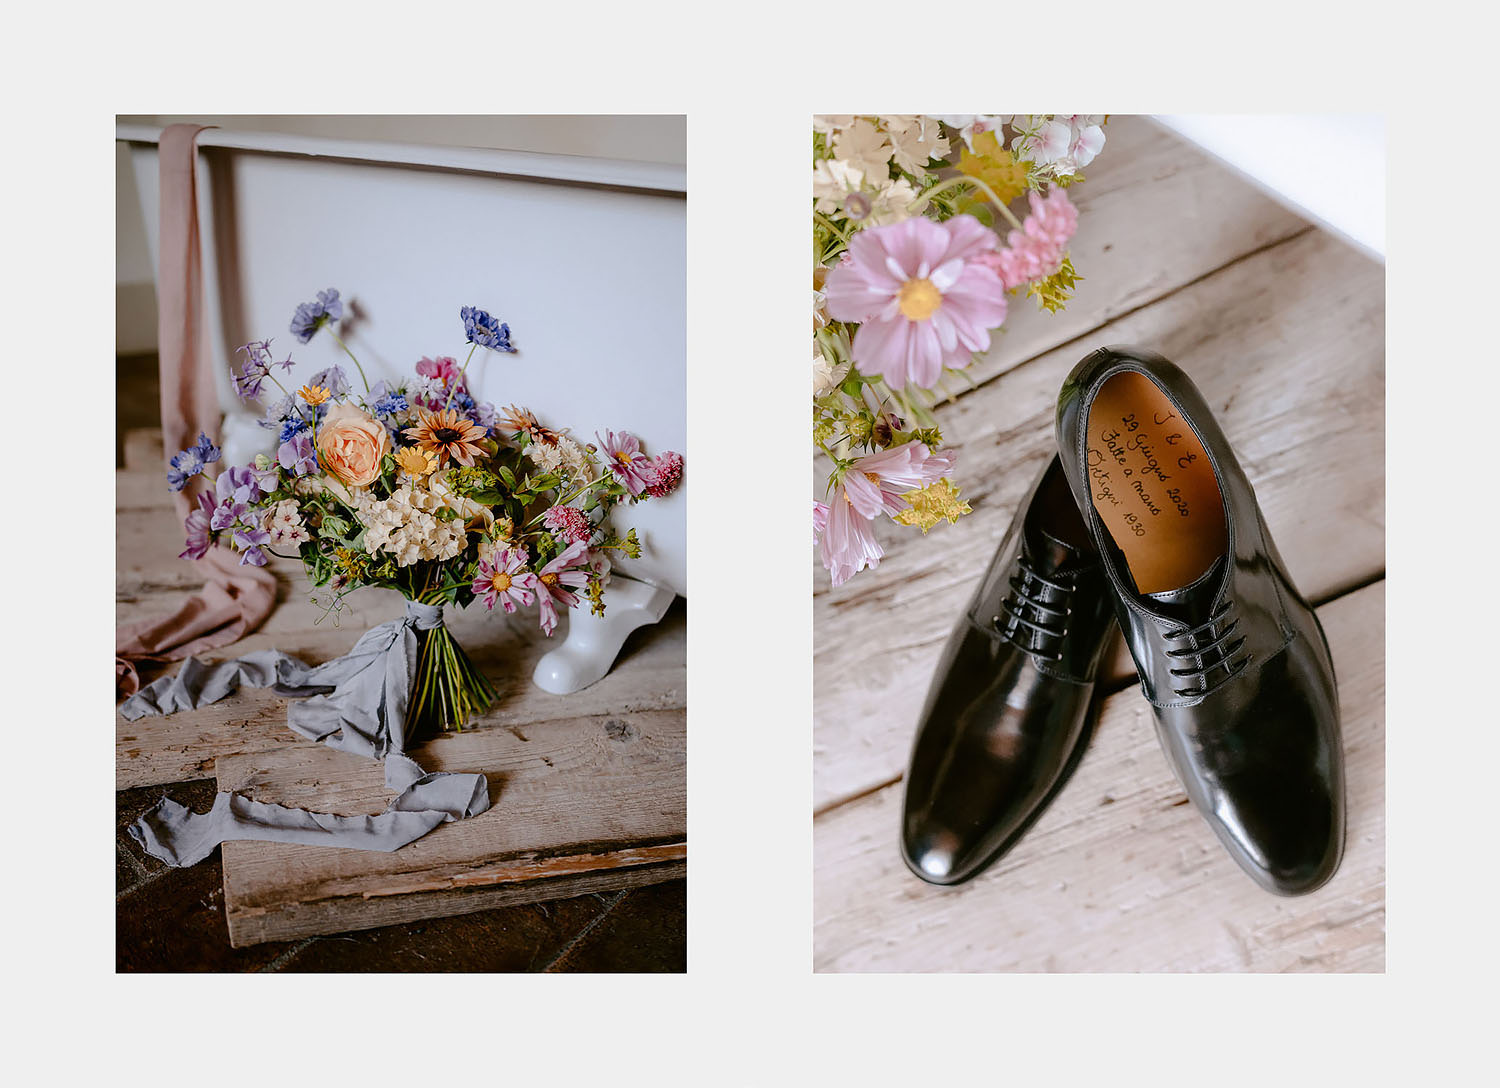 Wedding Inspiration Tuscan Rolling Hills puscina flowers bouquet ortigni shoes